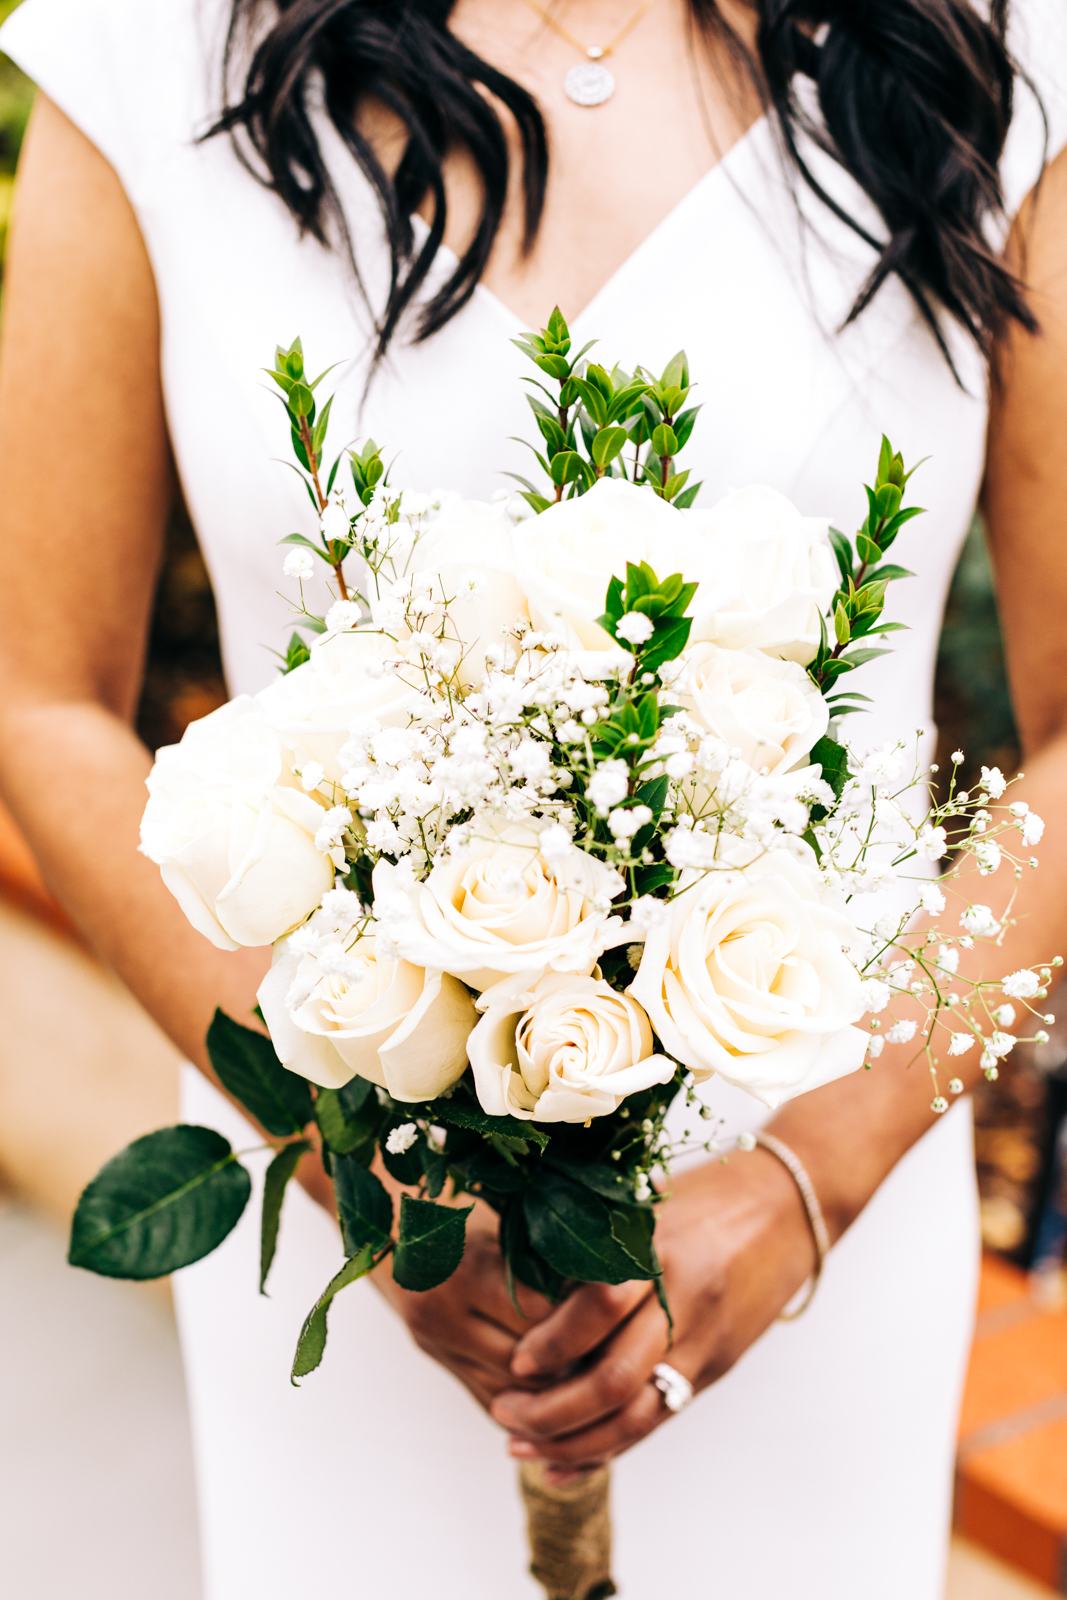 A photo of a bride's bouquet during her micro-wedding.